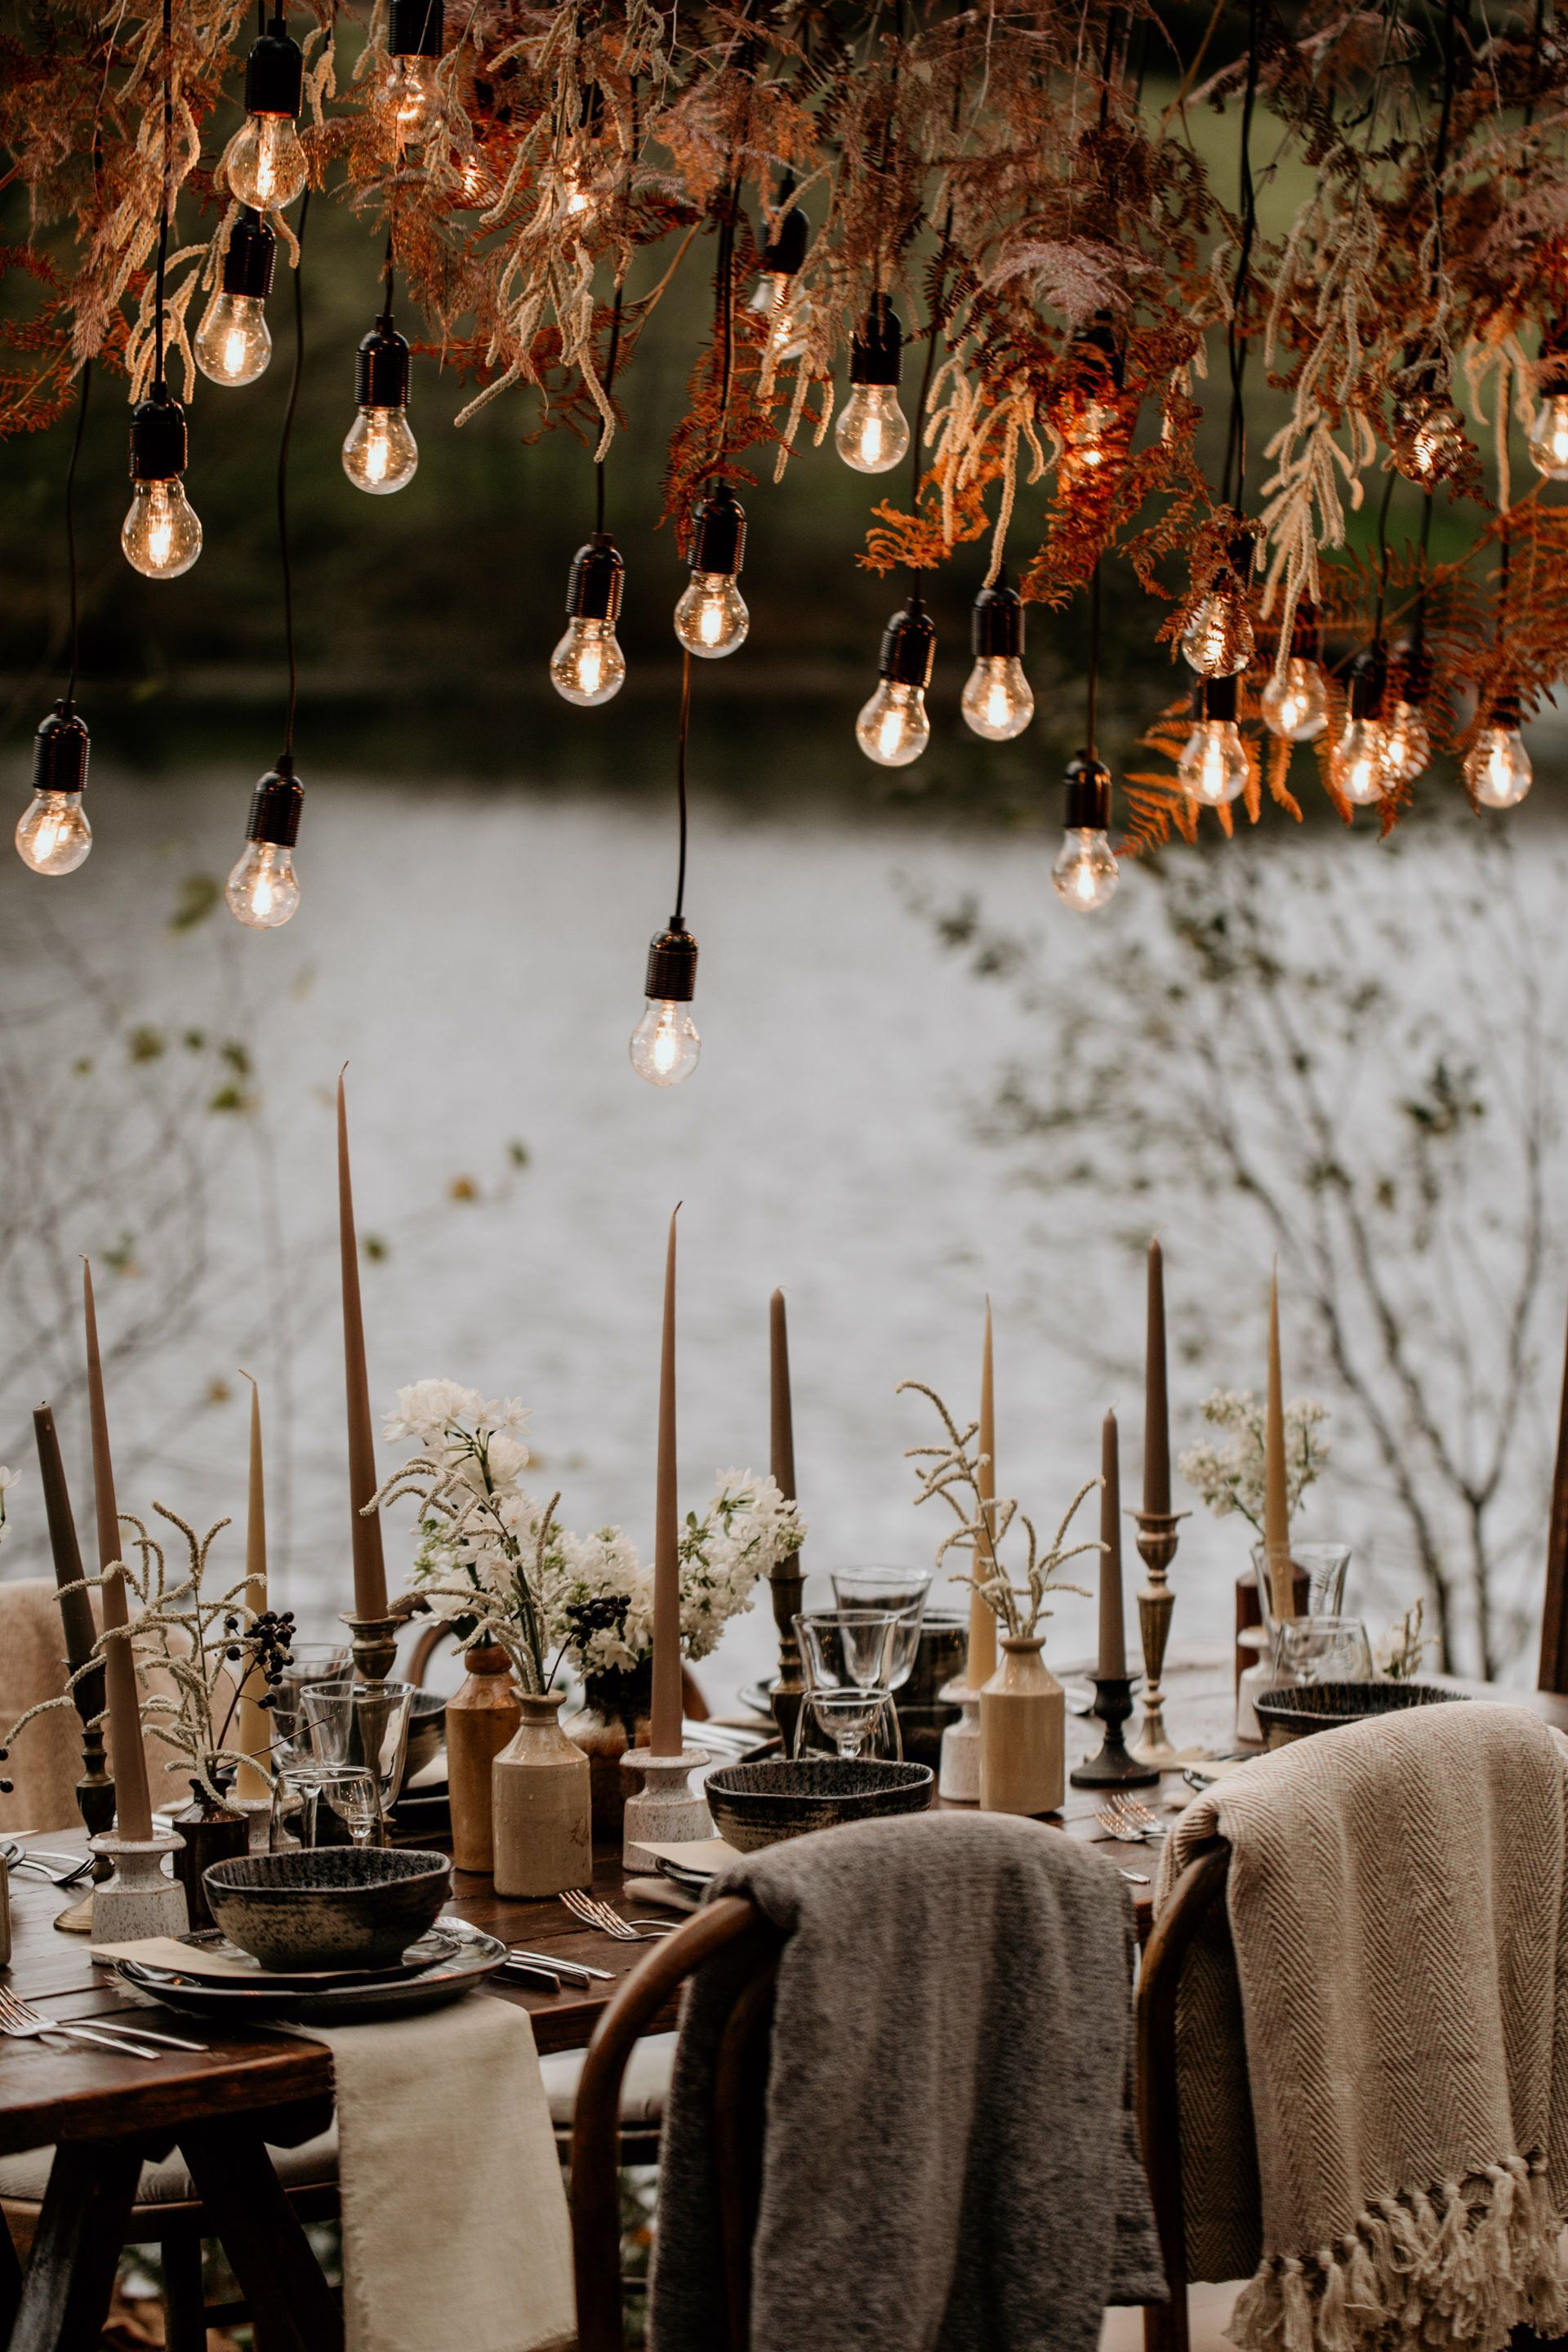 Styled Winter Shoot At A Sussex Boathouse Styled By Butler White Photography Elena Popa Pho Winter Wedding Table Cozy Wedding Woodland Wedding Inspiration